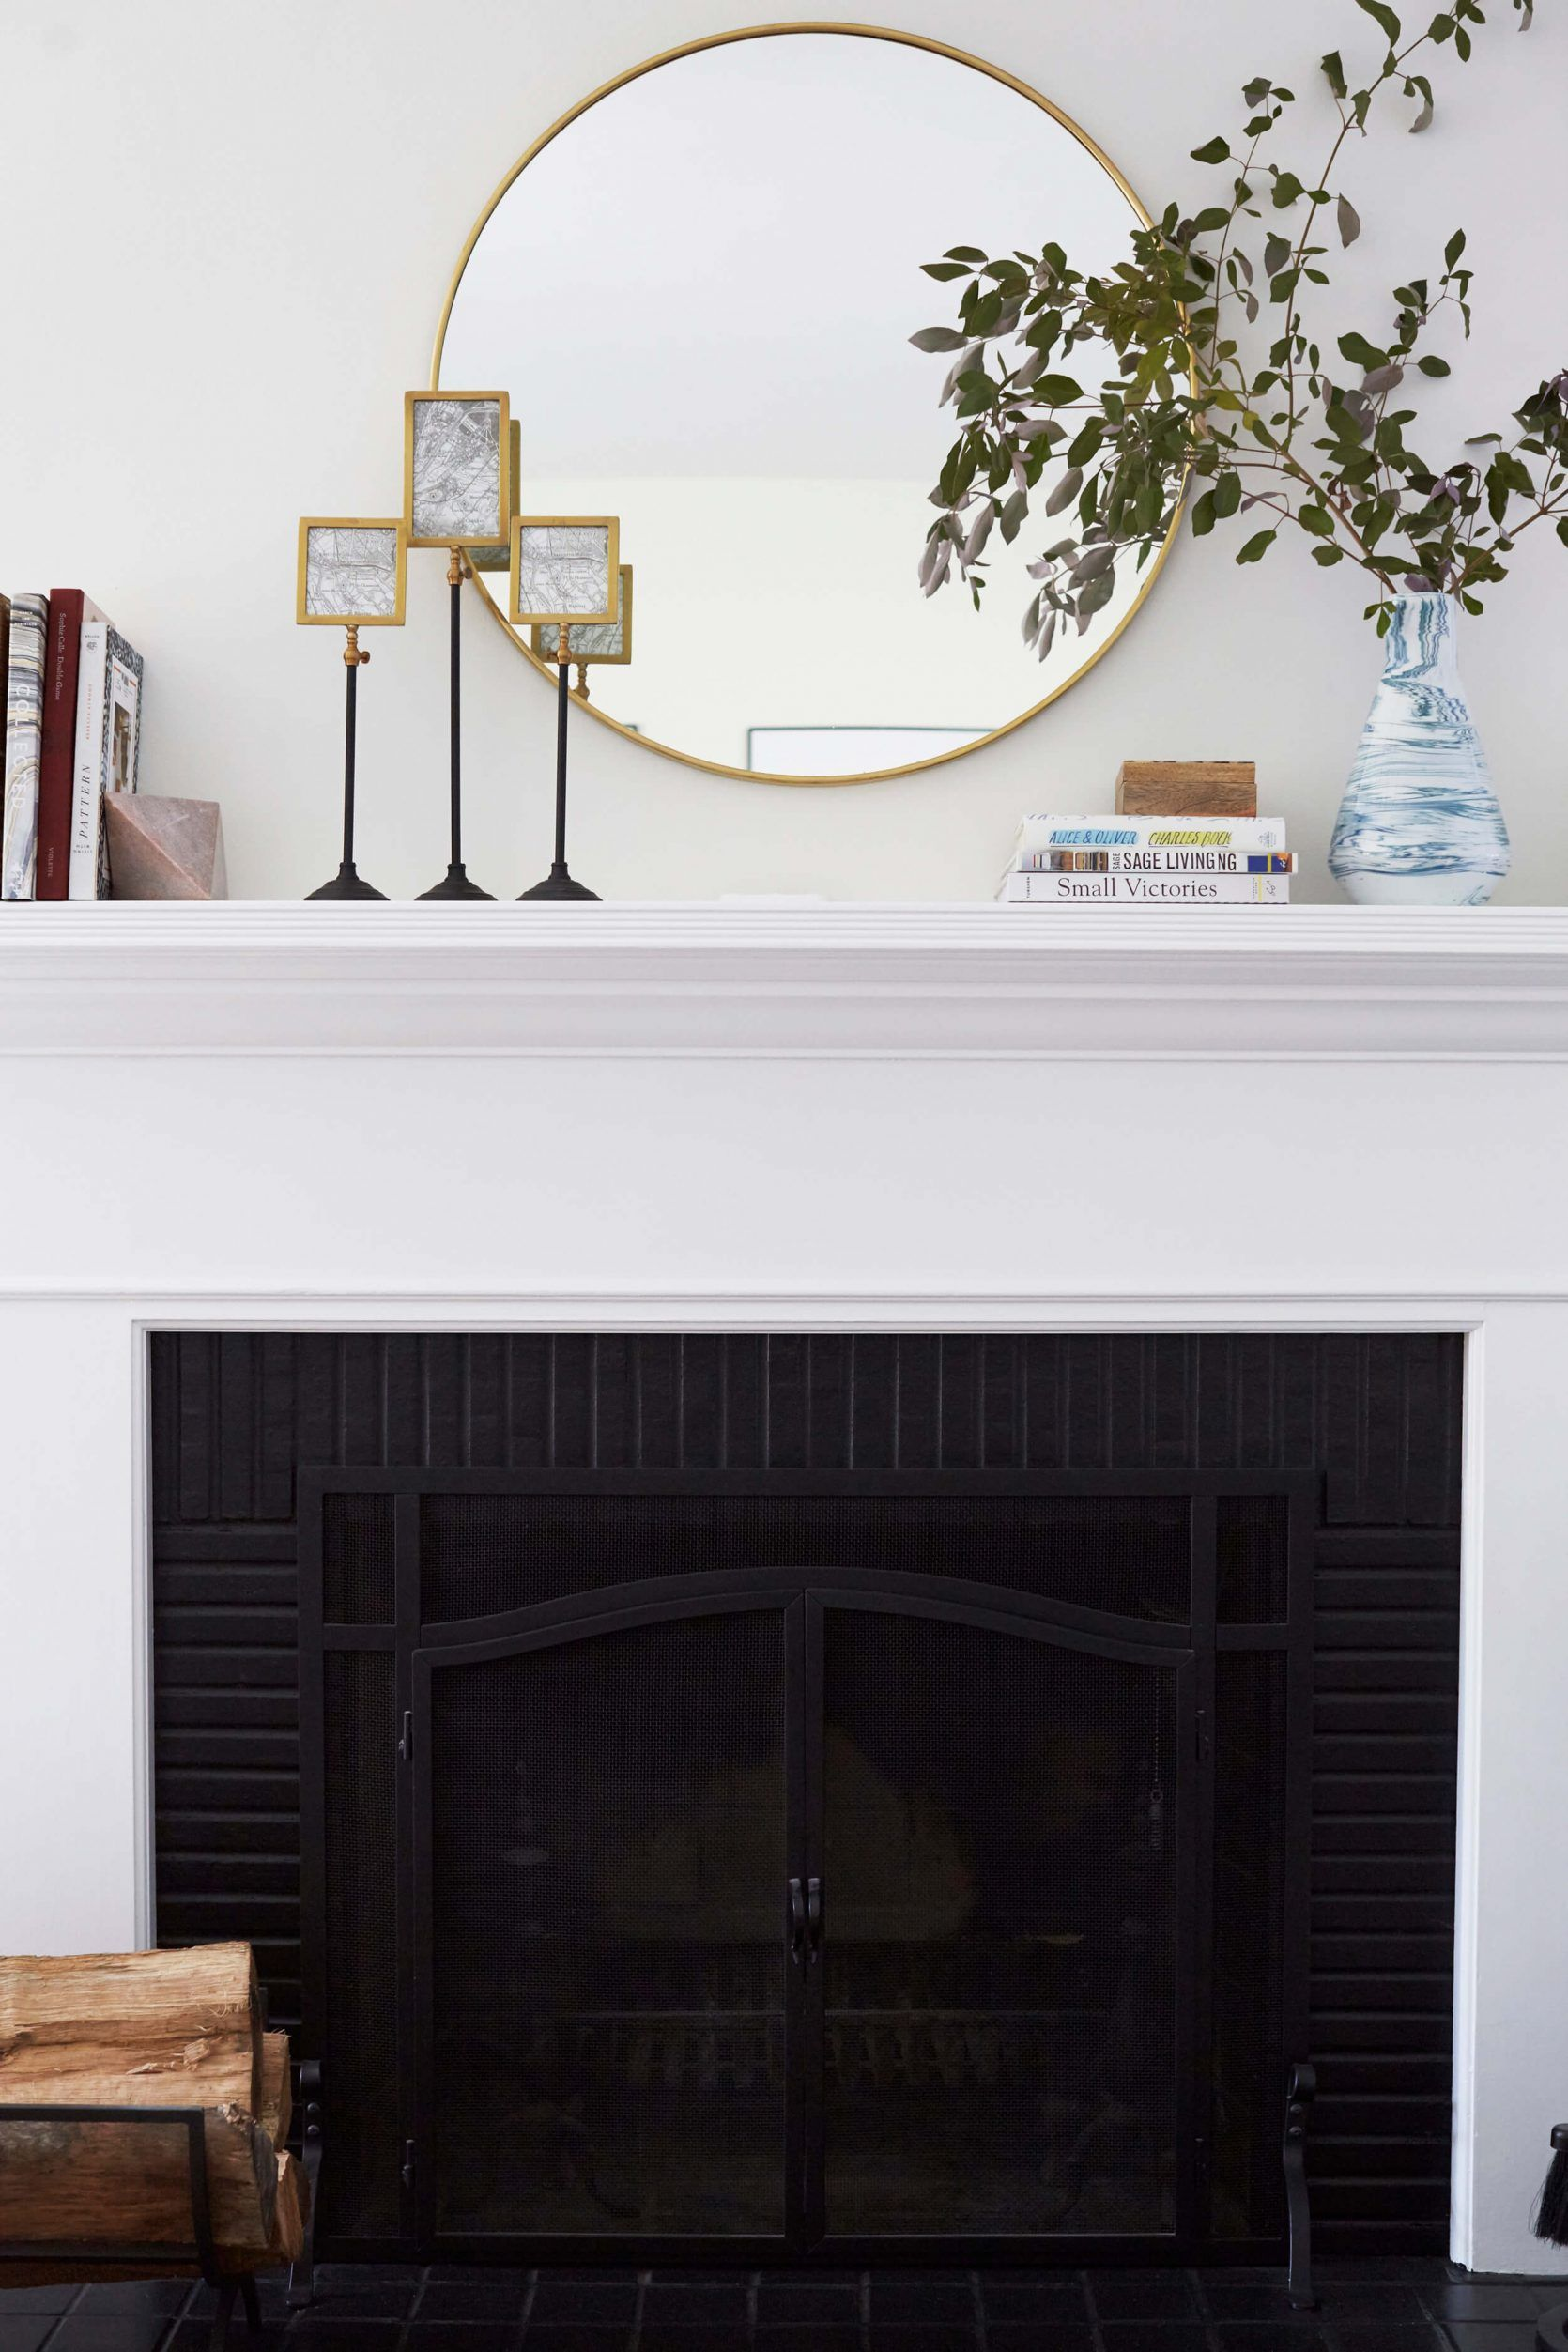 7 Fireplace Mantel Styling Ideas Mirror Over Fireplace Fireplace Mantel Decor Living Room Reveal